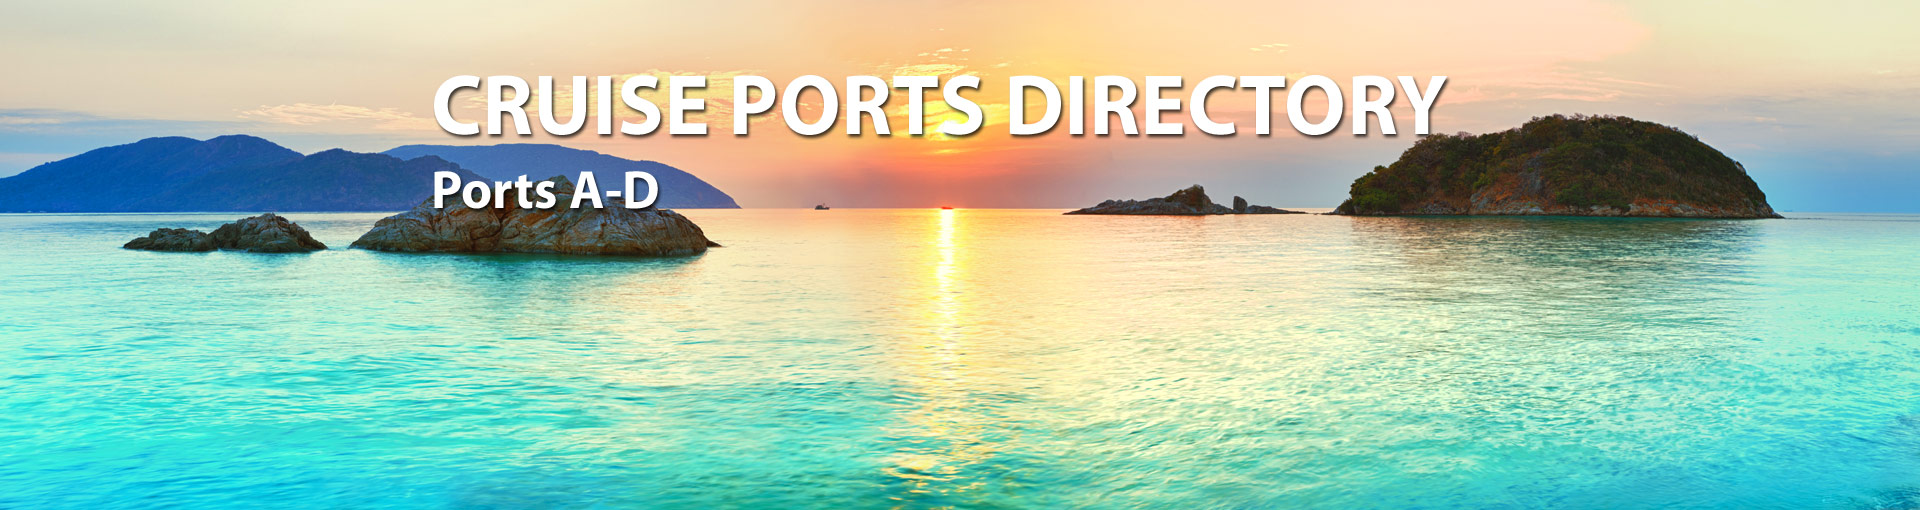 Cruise Ports Directory, Page 1